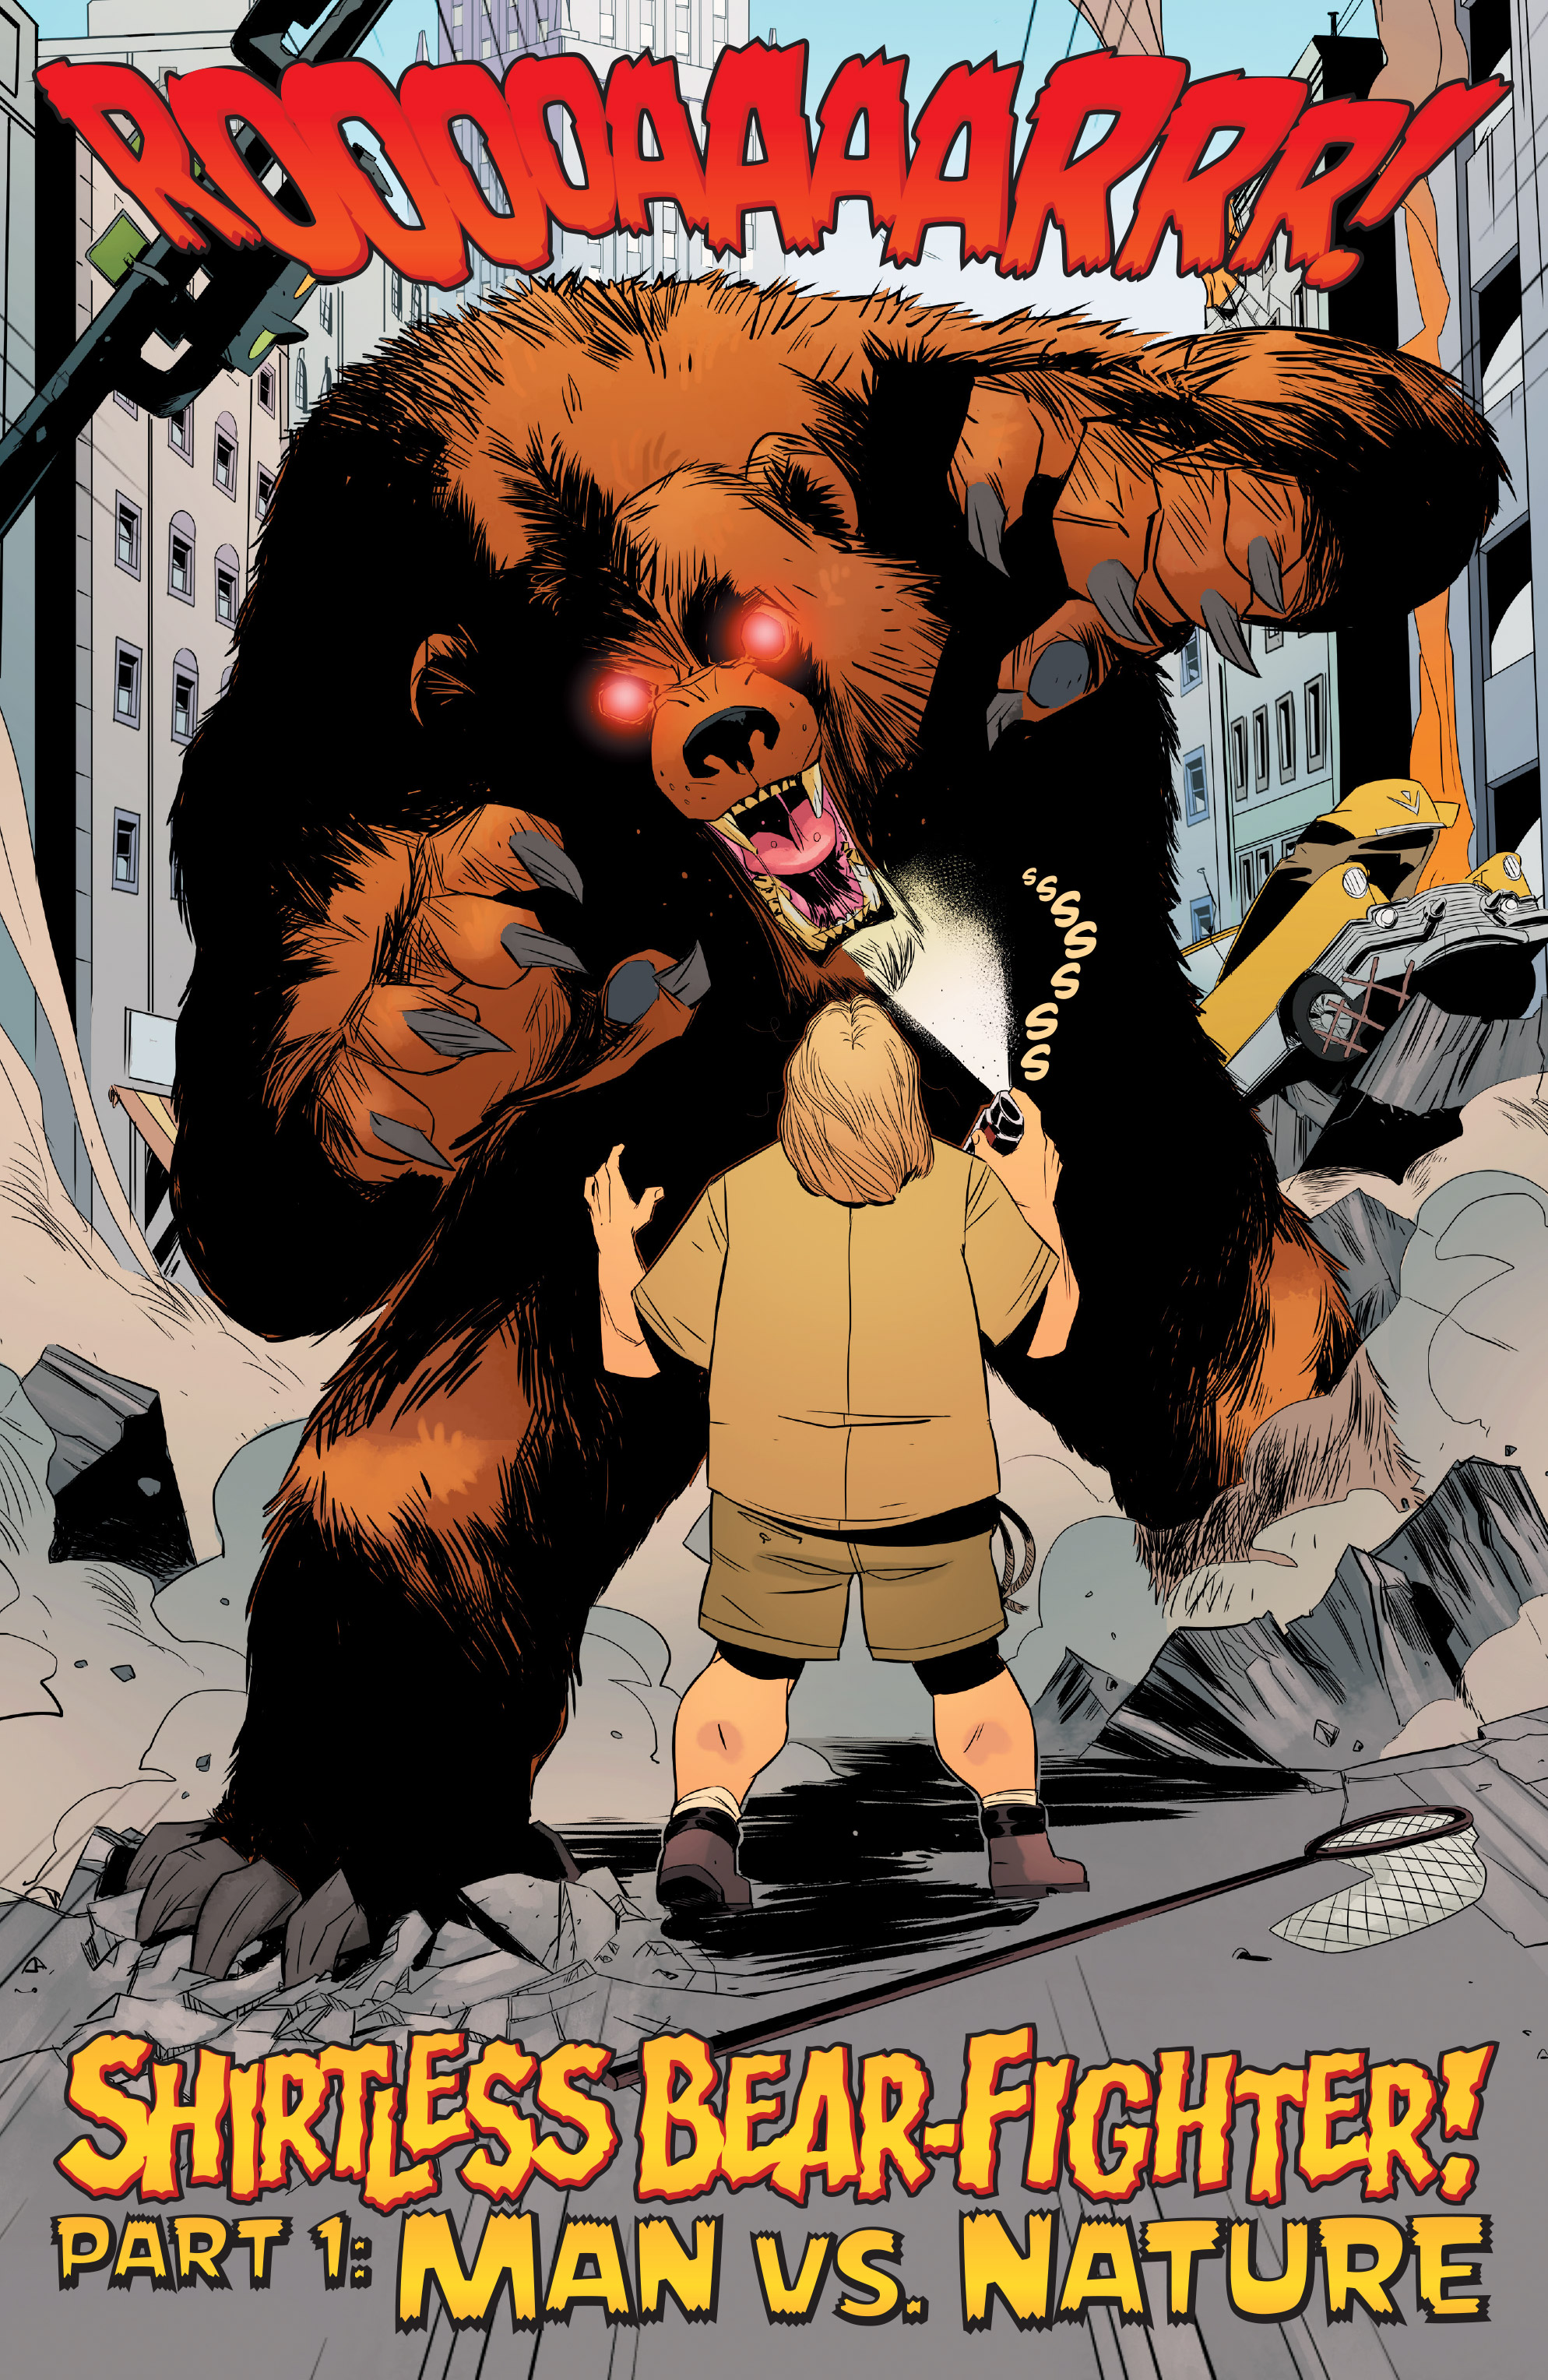 Read online Shirtless Bear-Fighter! comic -  Issue #1 - 4